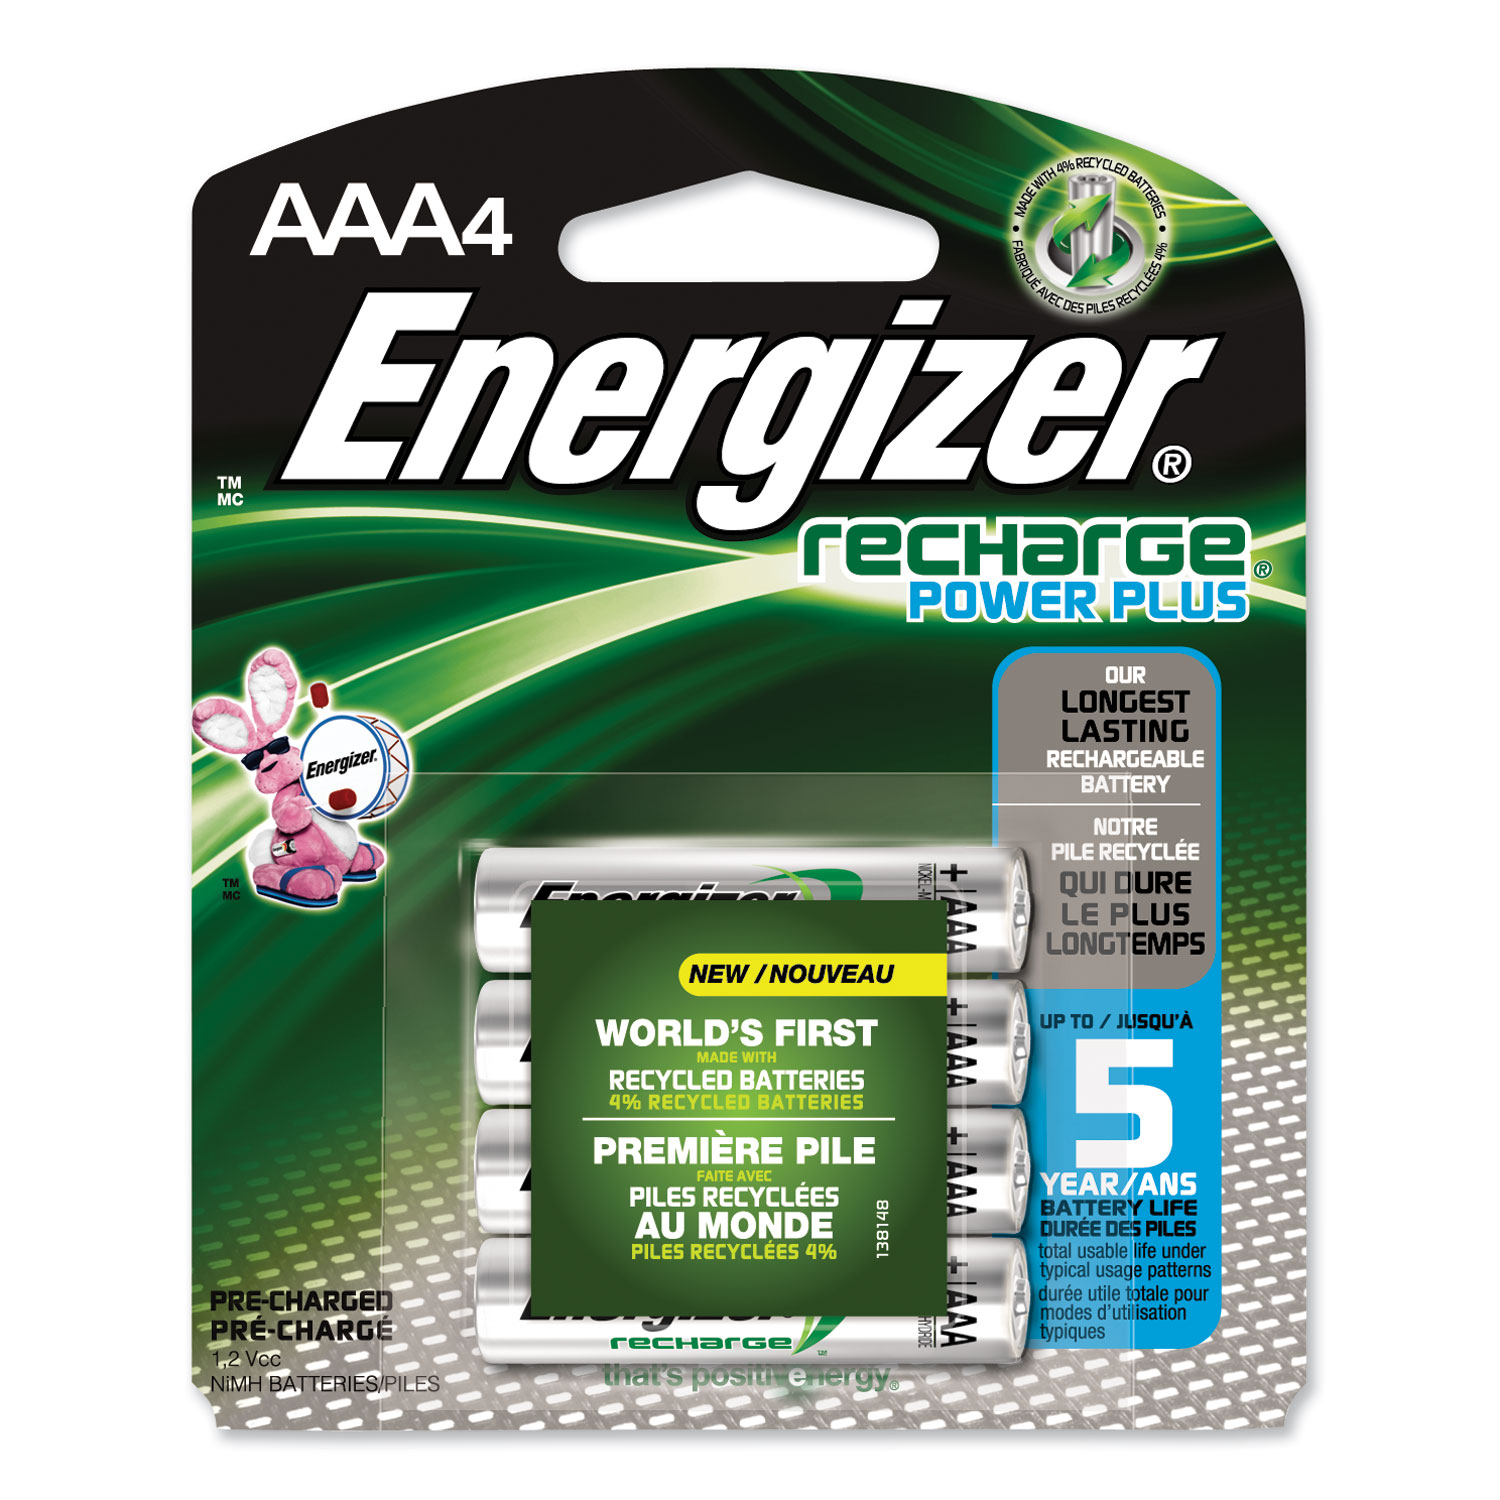 NiMH Rechargeable AAA Batteries, 1.2V, 4/Pack